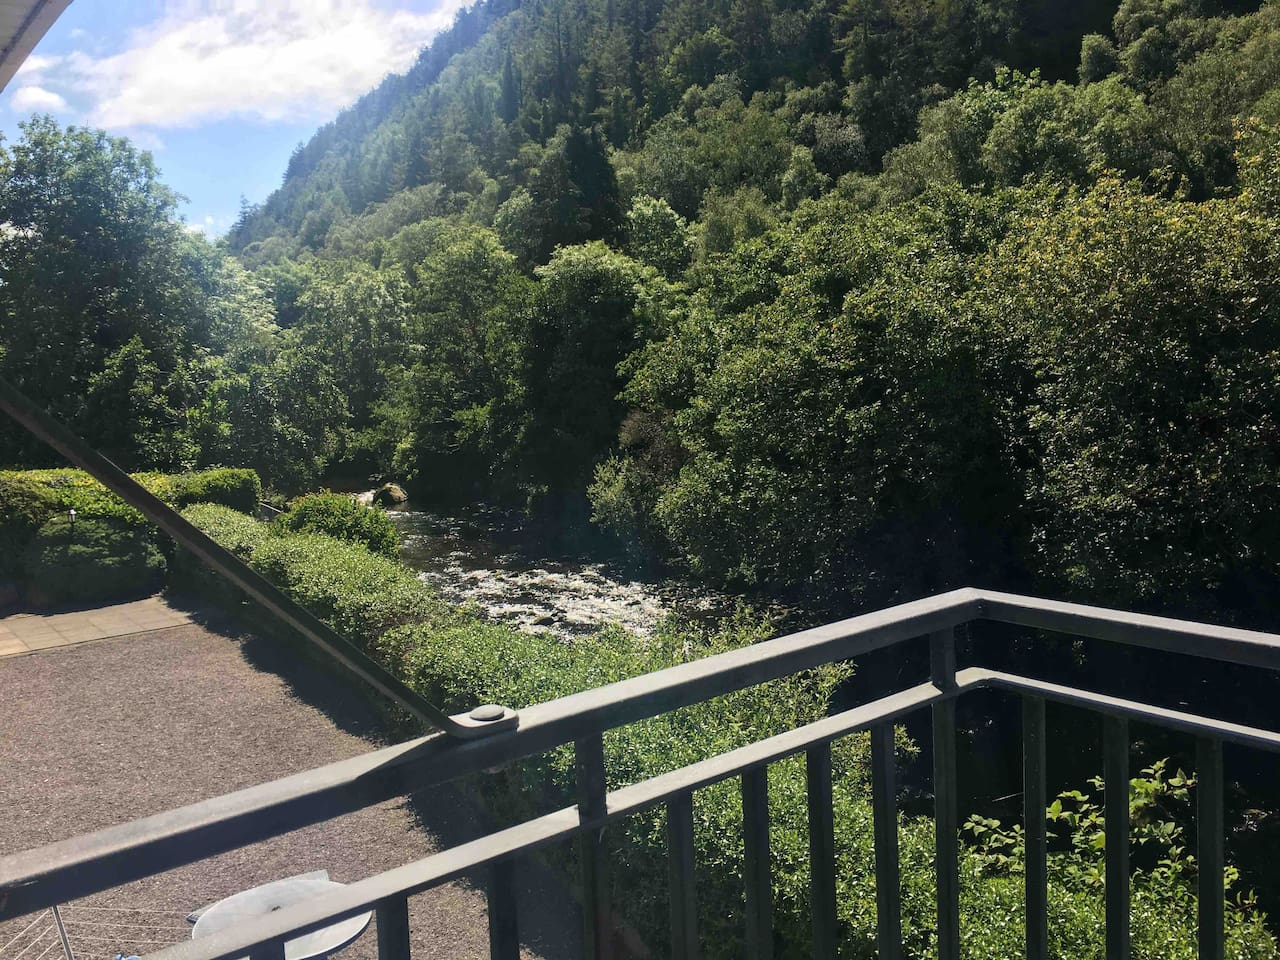 View from the balcony of river behy with lovely tree lined slopes. The sound of the river is both refreshing and relaxing.